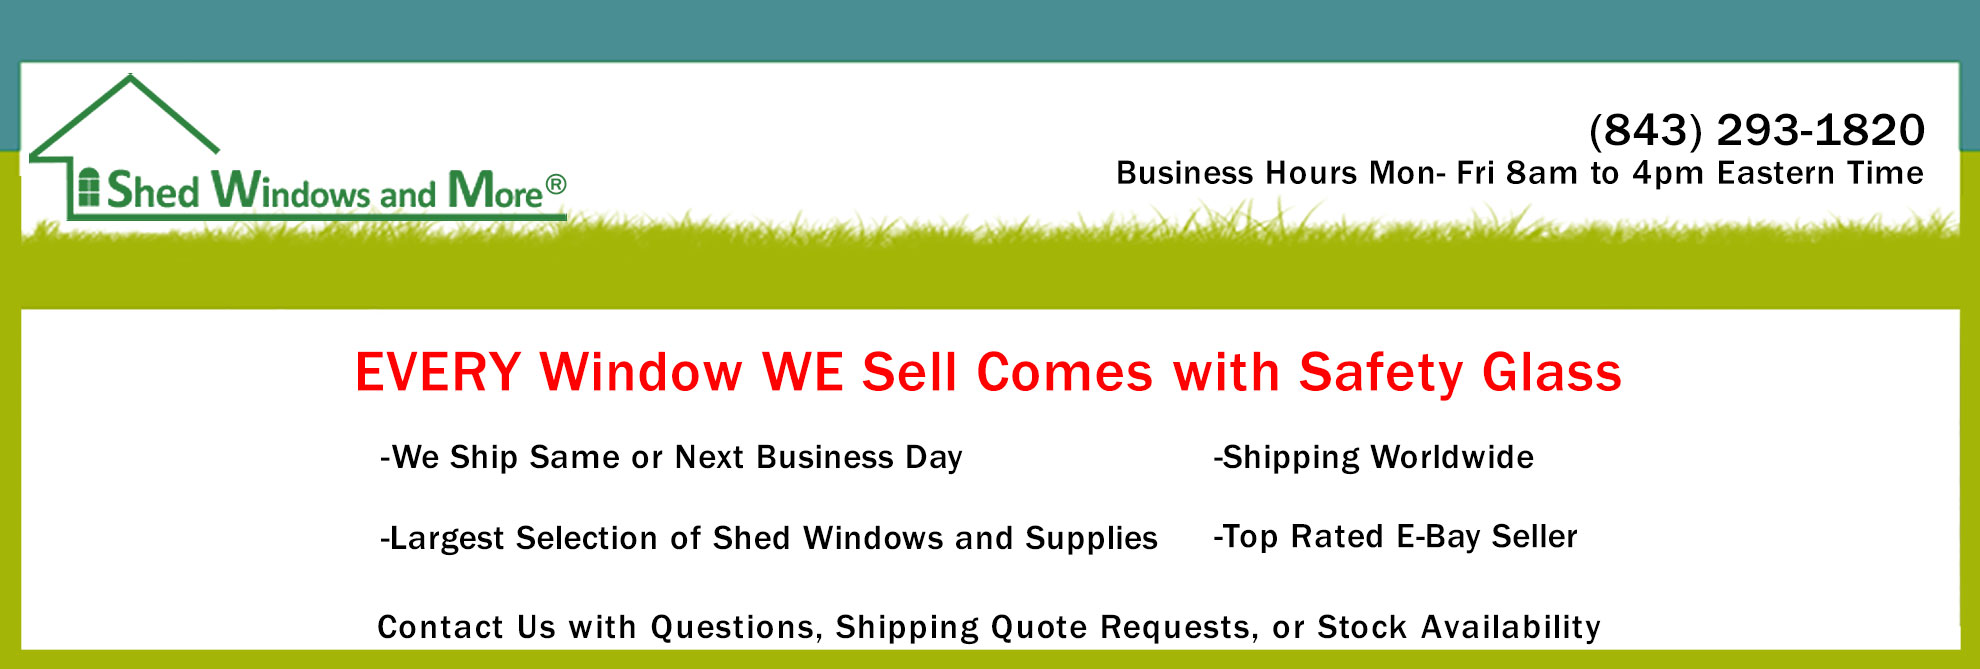 Shed windows coupon code